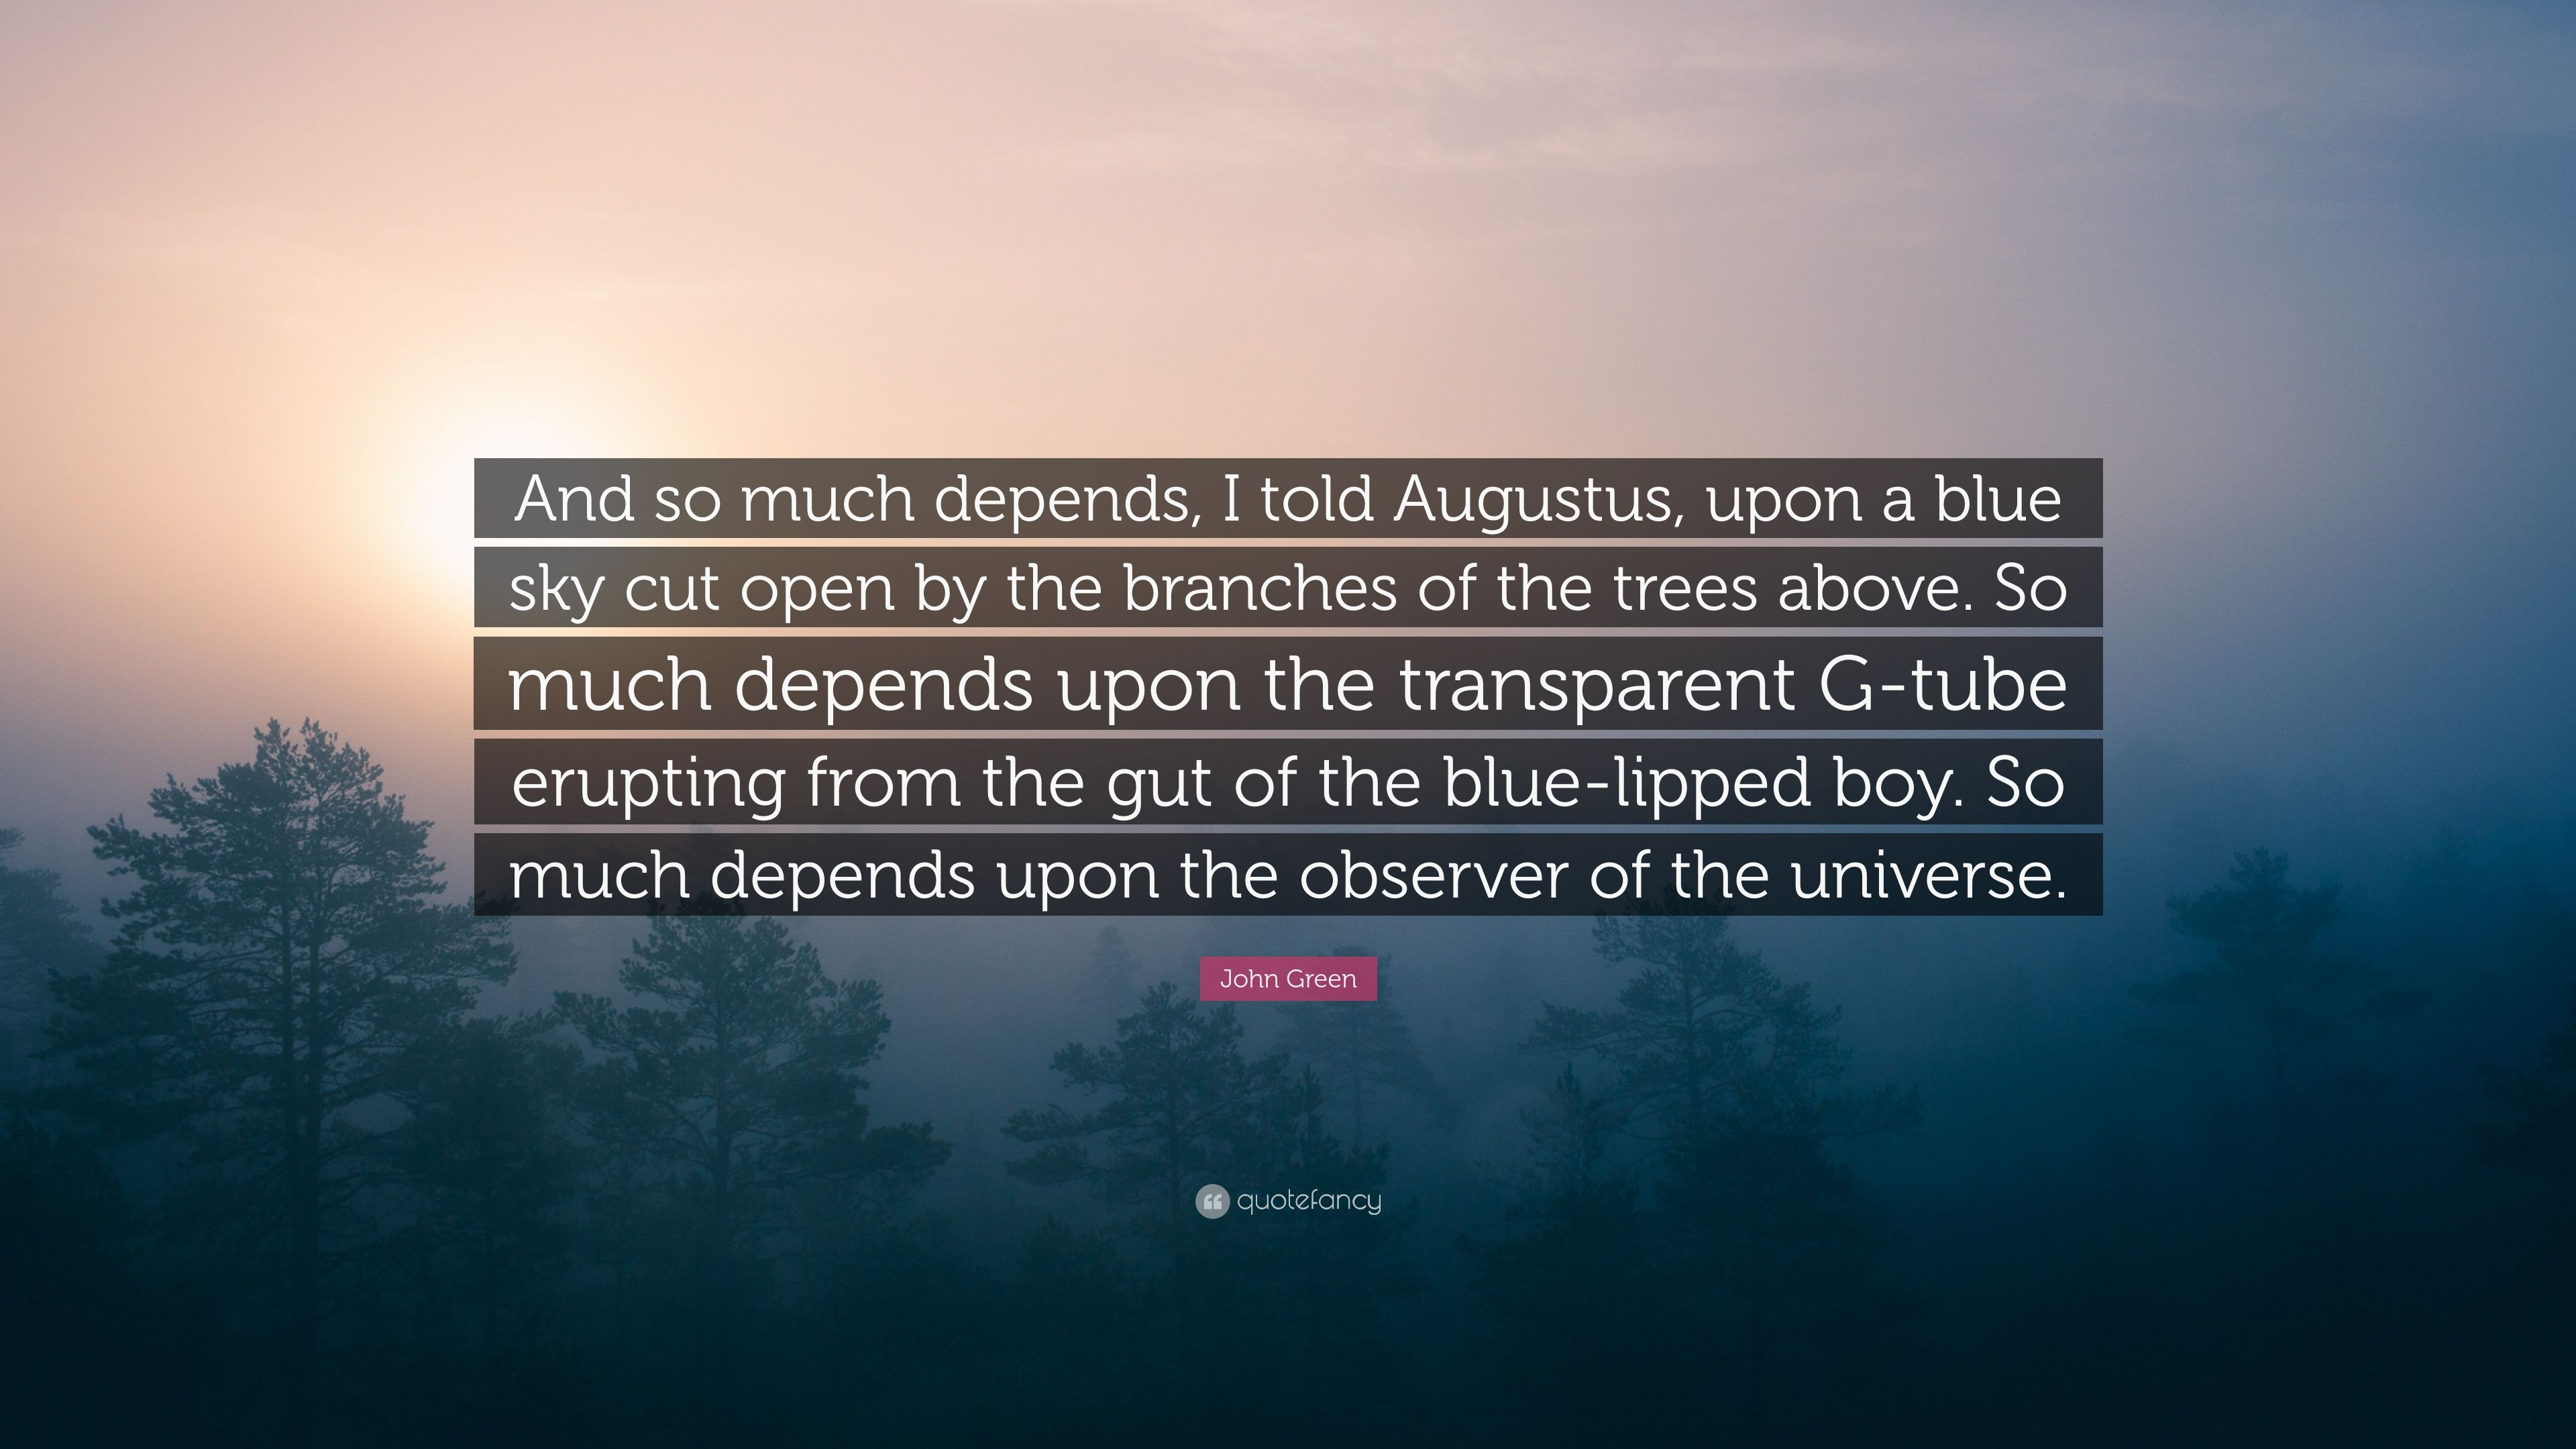 John Green Quote And So Much Depends I Told Augustus Upon A Blue Sky Cut Open By The Branches Of The Trees Above So Much Depends Upon 7 Wallpapers Quotefancy